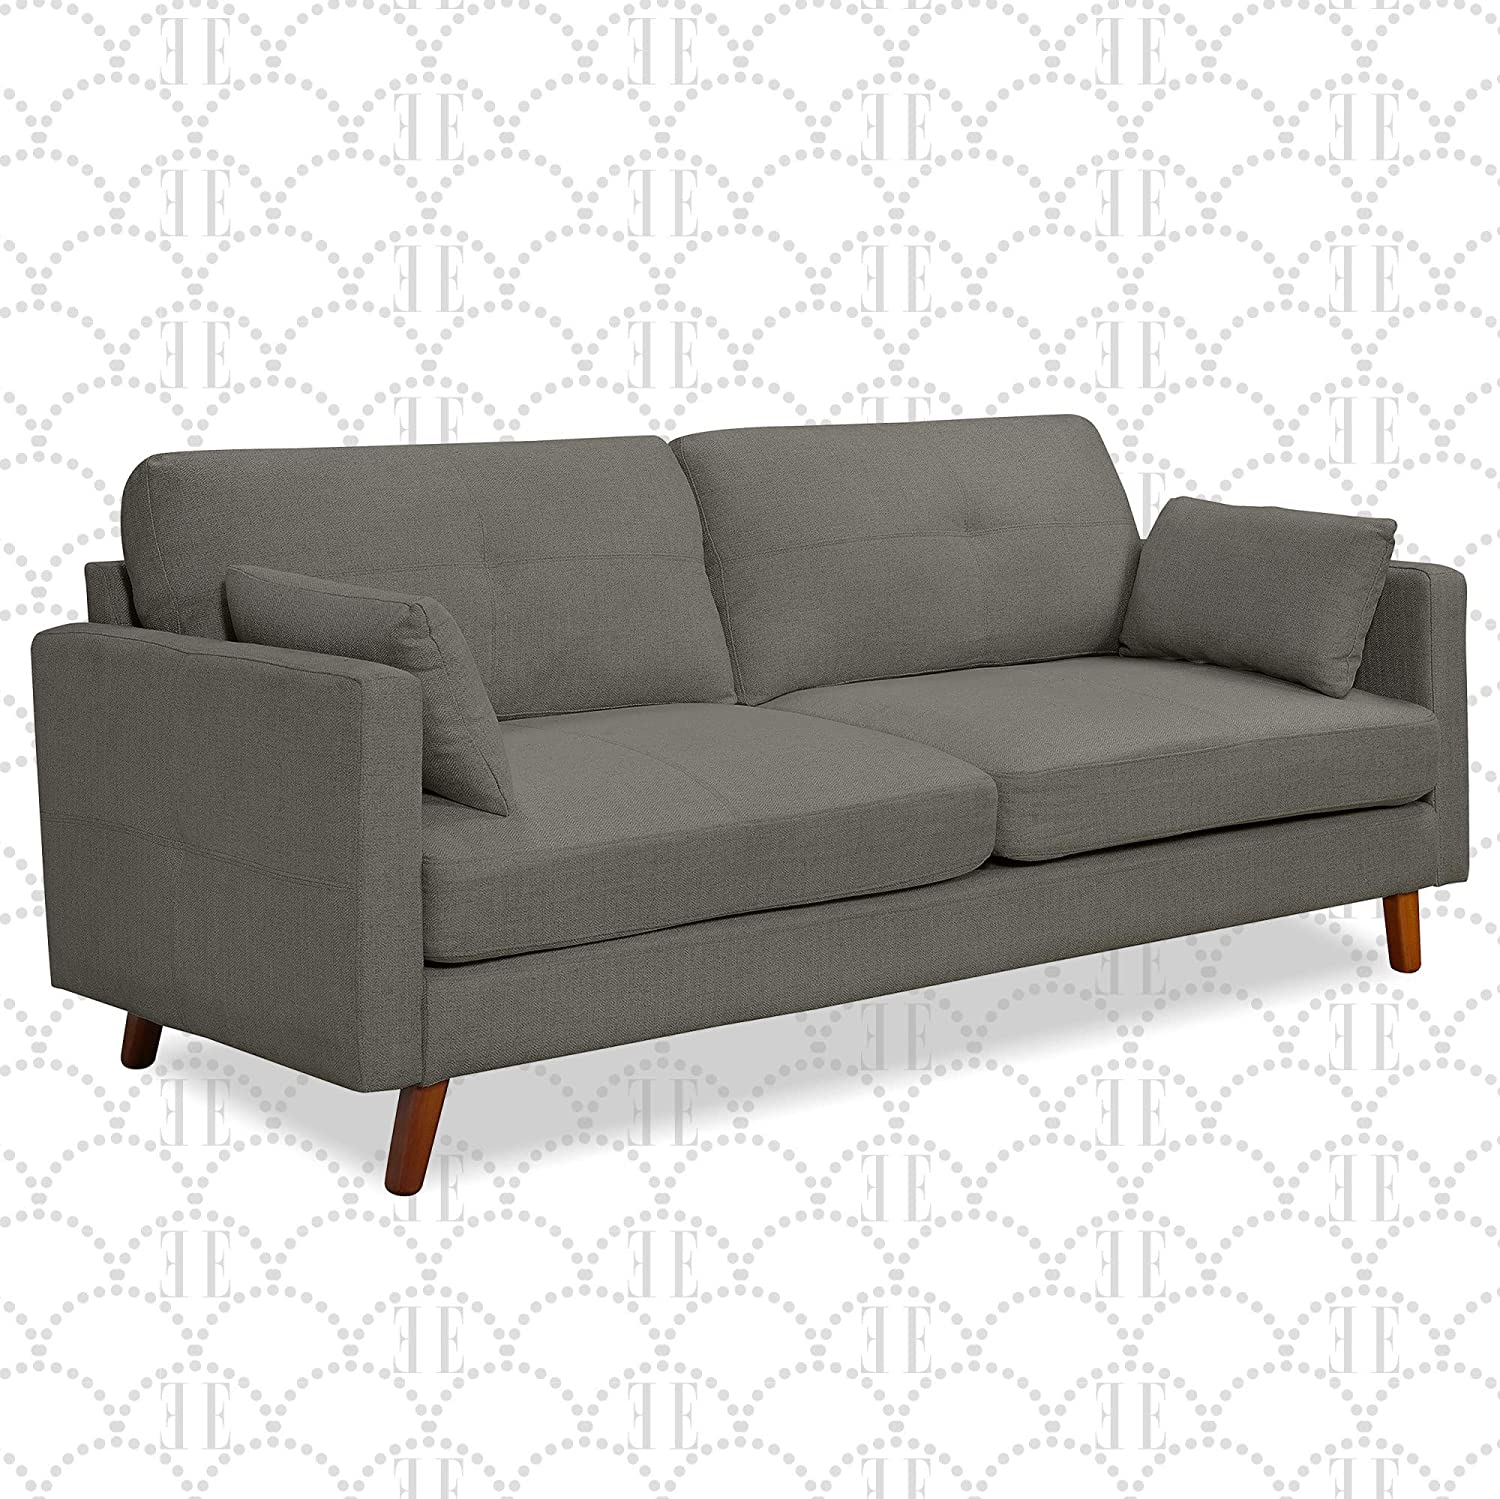 "Amazon.com: Elle Decor Alix Upholstered Living Room Sofa, Tufted Fabric Couch, Mid-Century Walnut Tapered Footers, 78"" Sofa, Light Gray: Furniture & Decor"